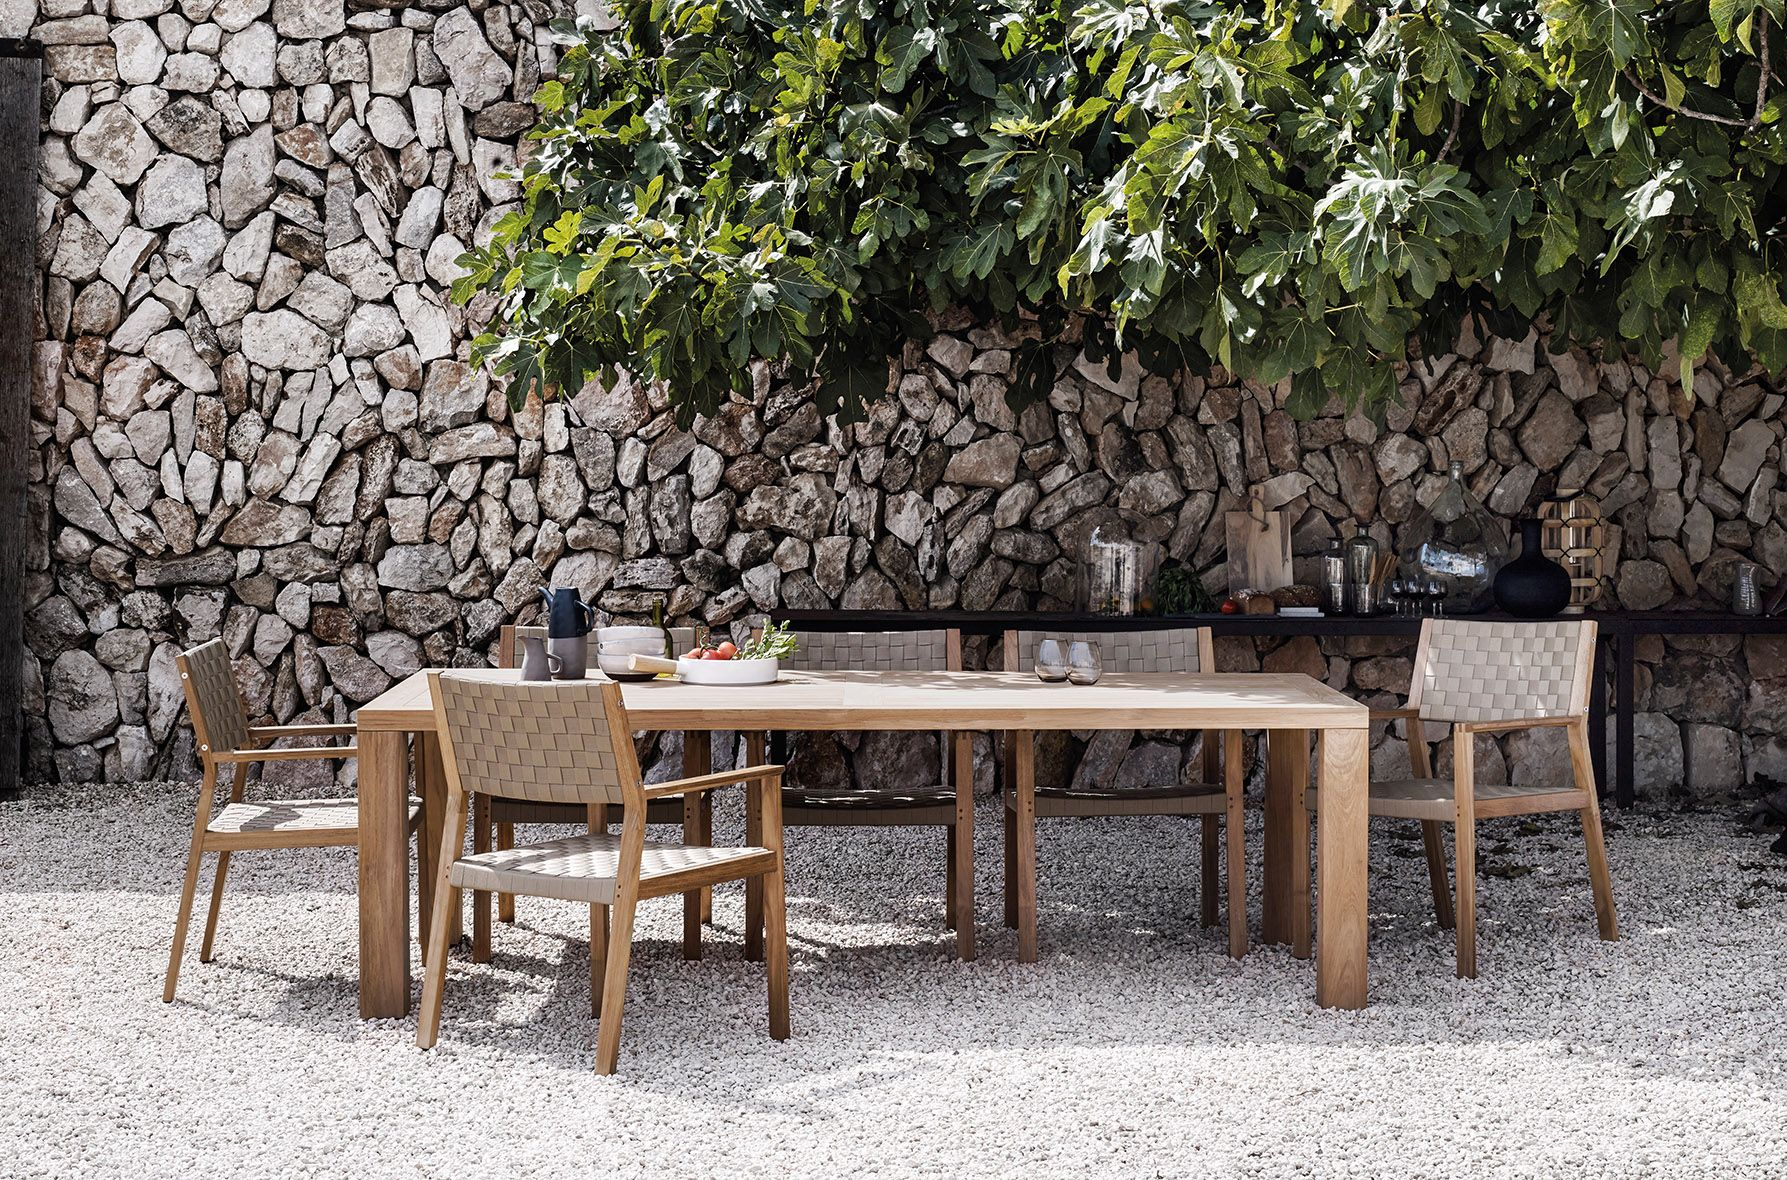 Luxury Outdoor Furniture Brands That Make Garden Chairs, Tables And Sofas,  Including Gandiablasco, Dedon And Kettal.